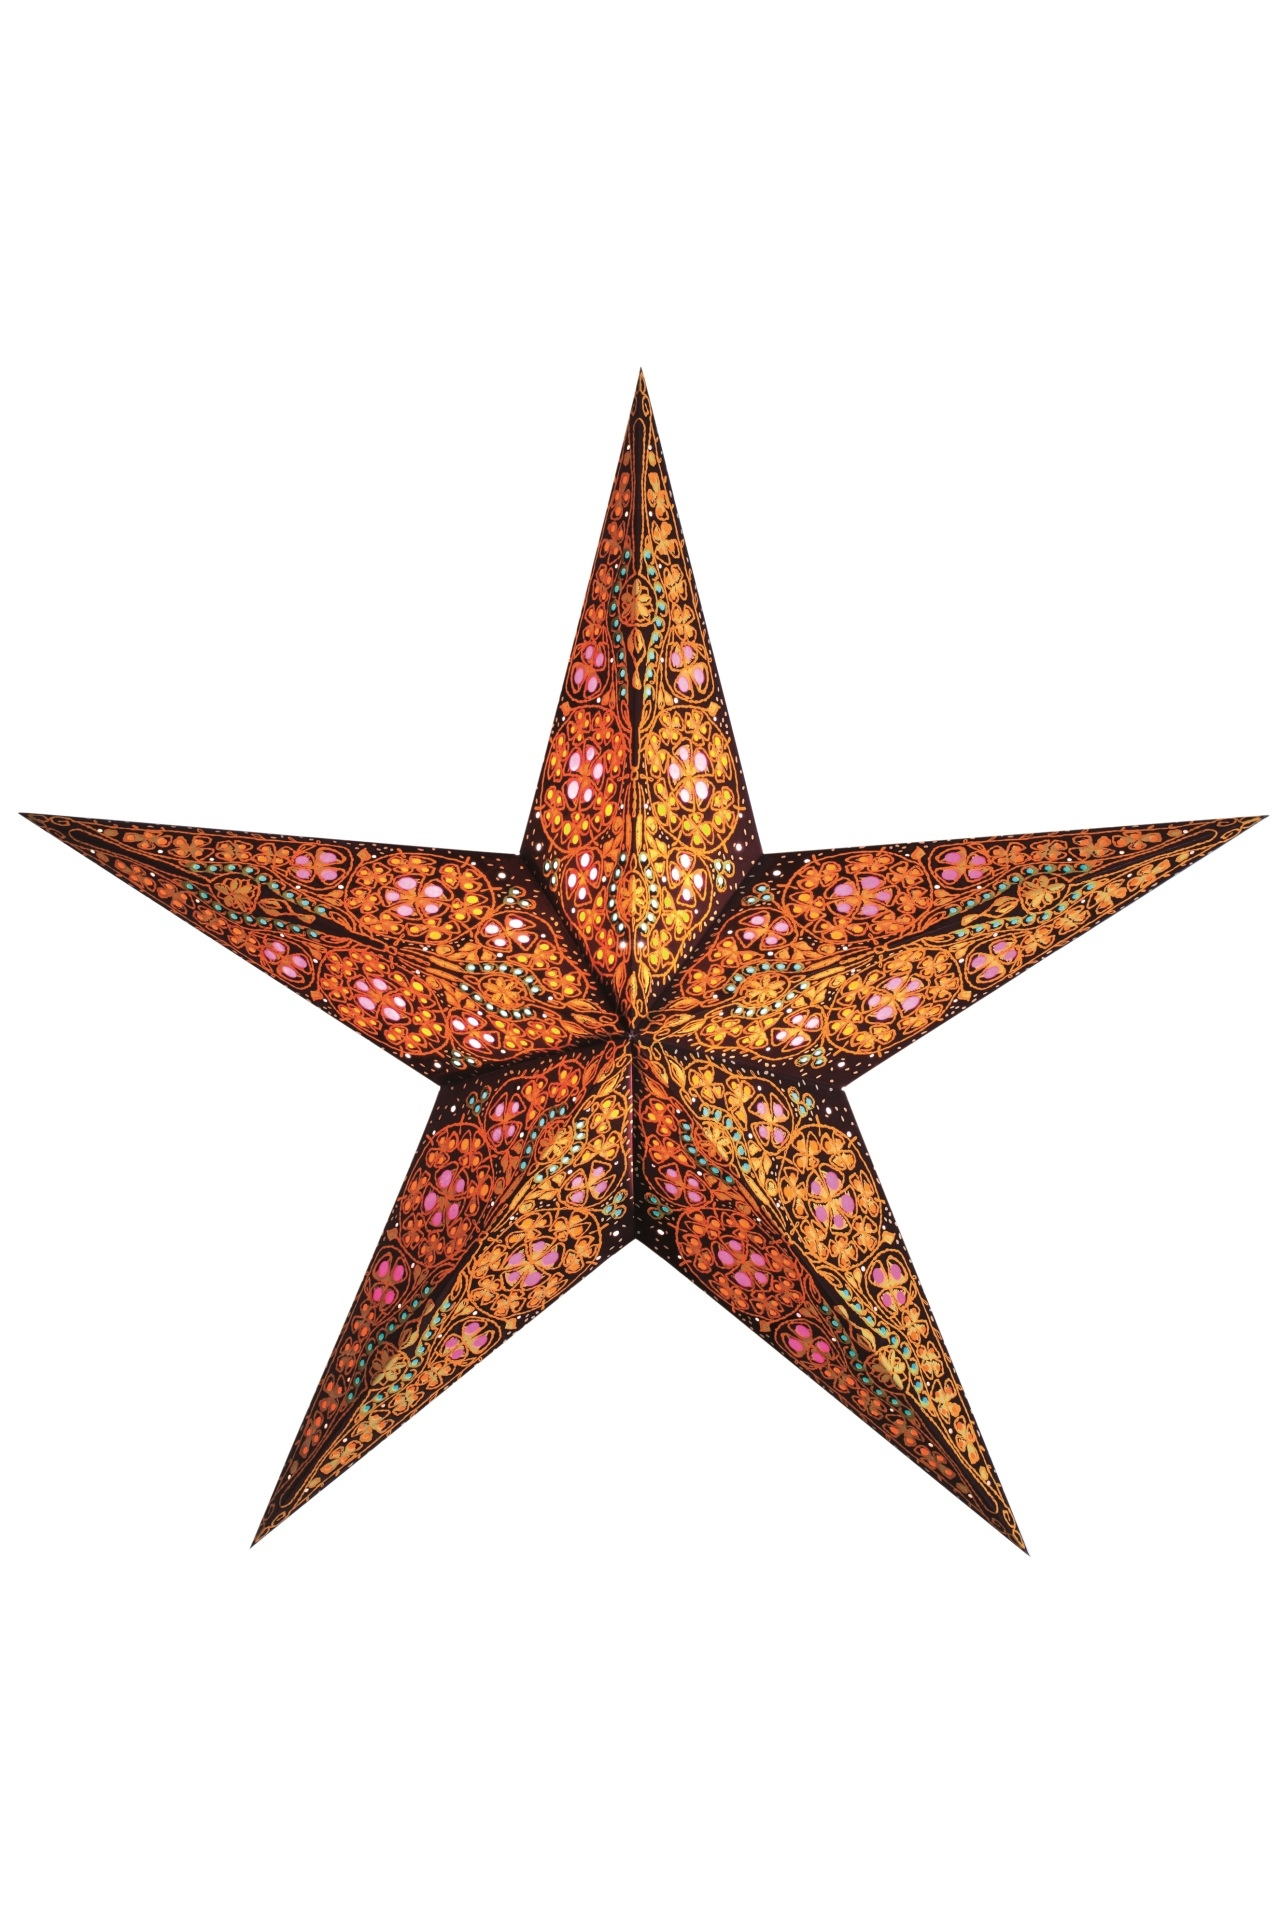 earth friendly starlightz  designer lamps  paper stars  - starlightz